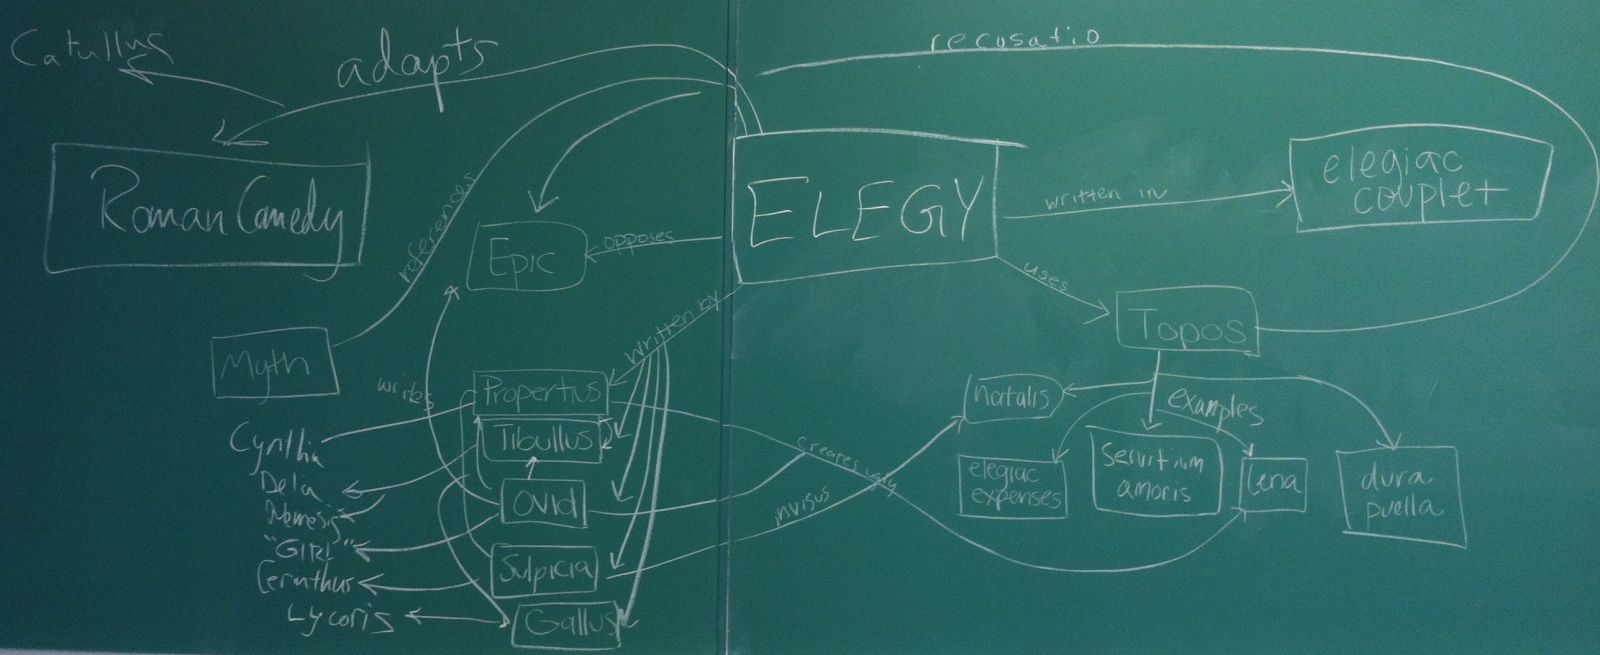 Wake Forest University elegy course's concept map